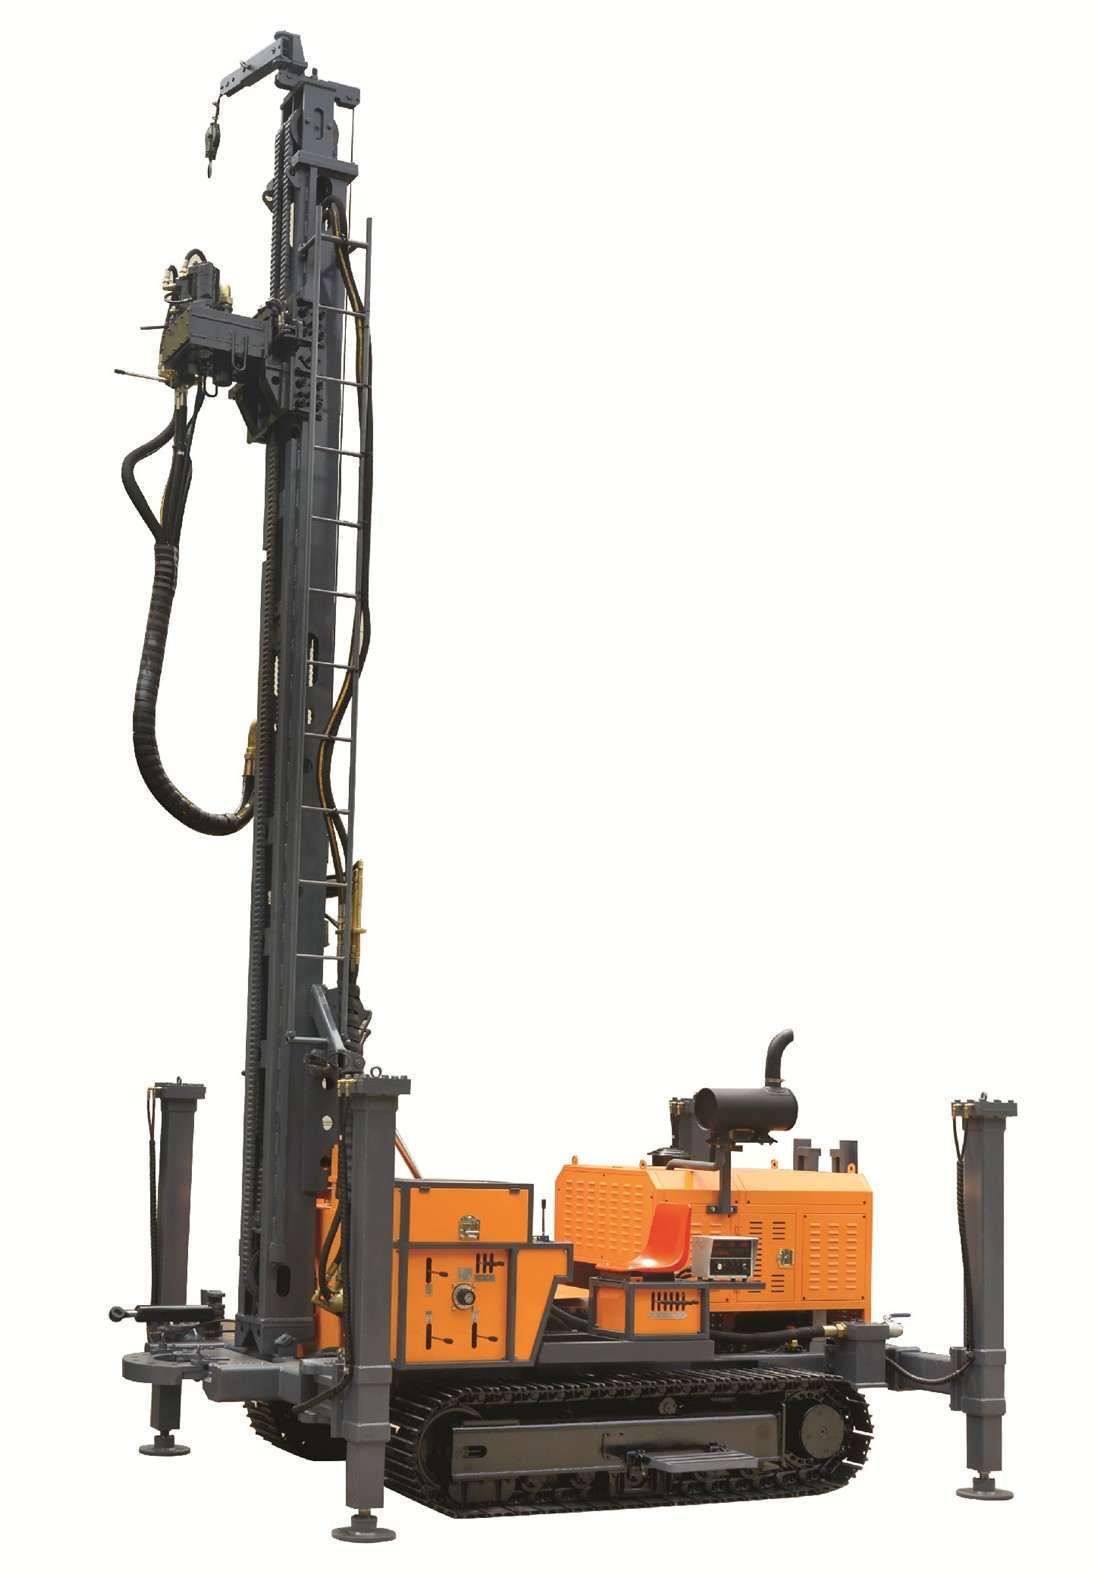 KW400 water well drill rig